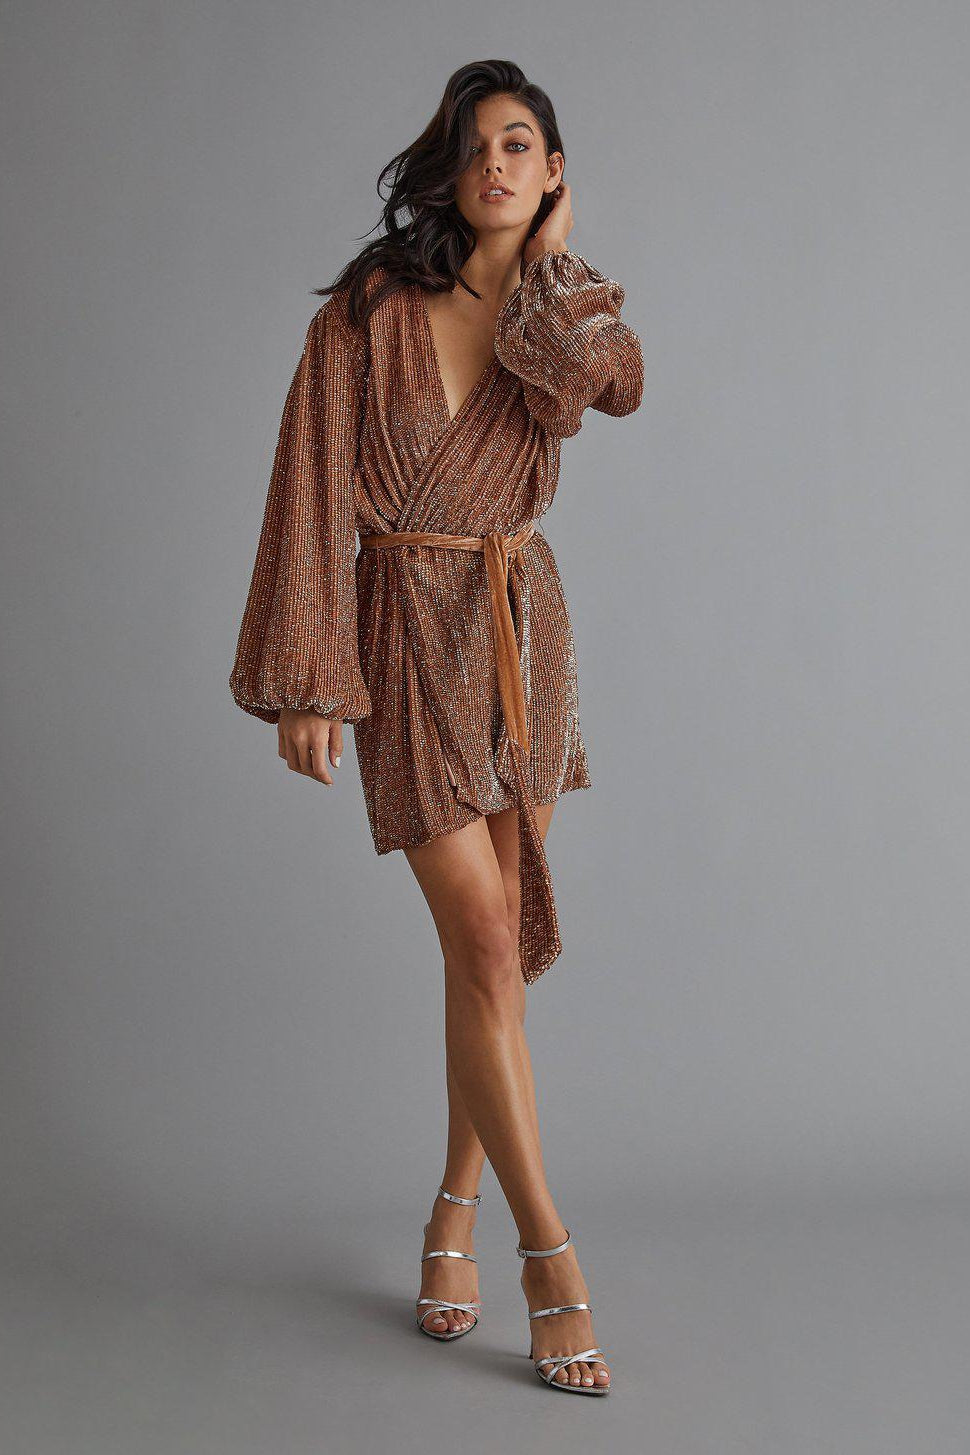 RETROFETE GABRIELLE ROBE IN BRONZE